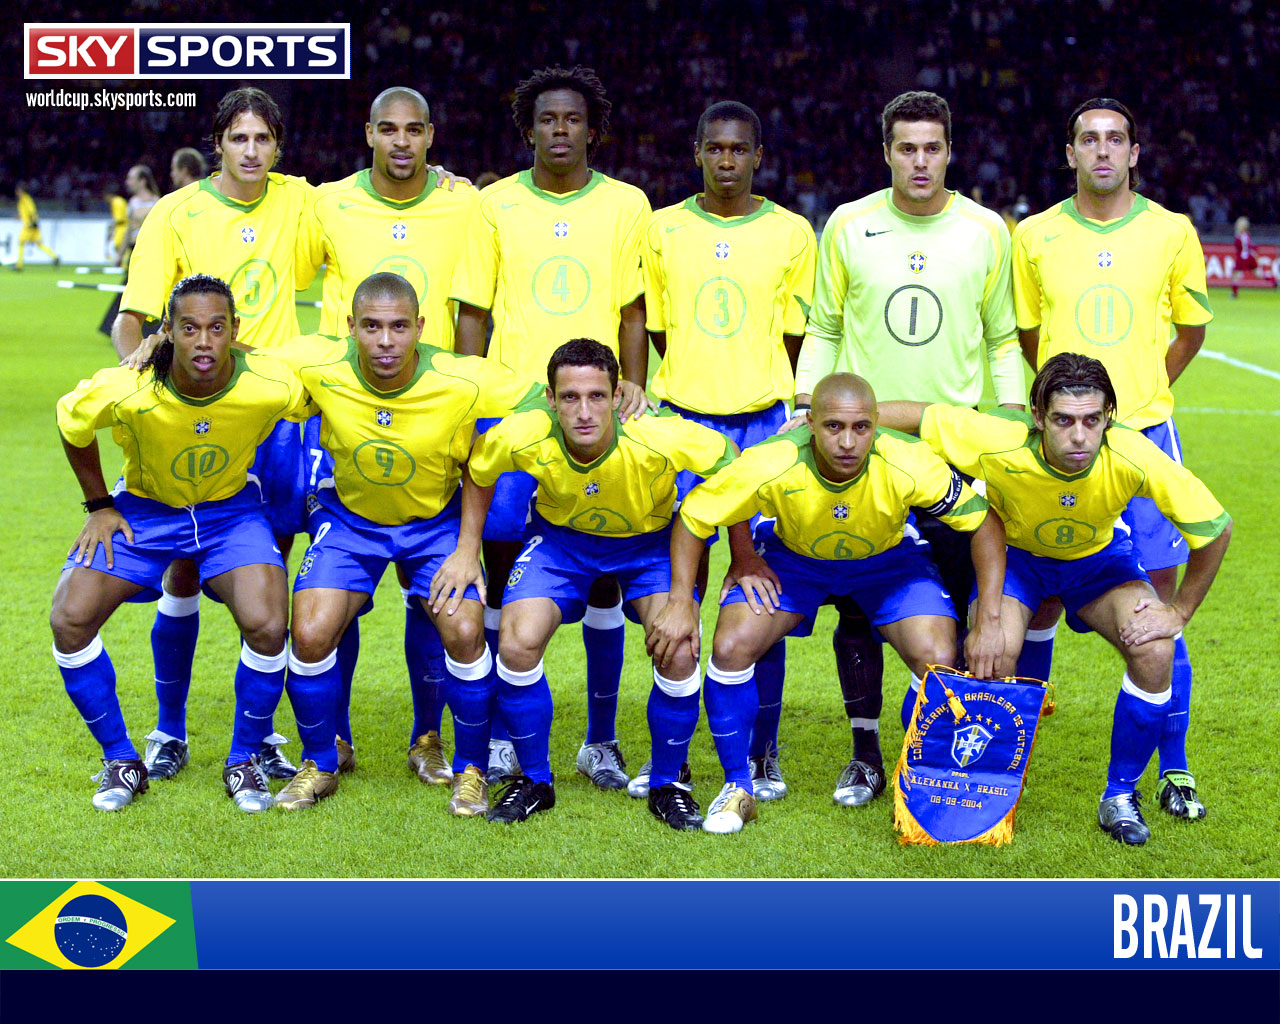 Brazil National Team  Soccer Wallpaper 421063  Fanpop